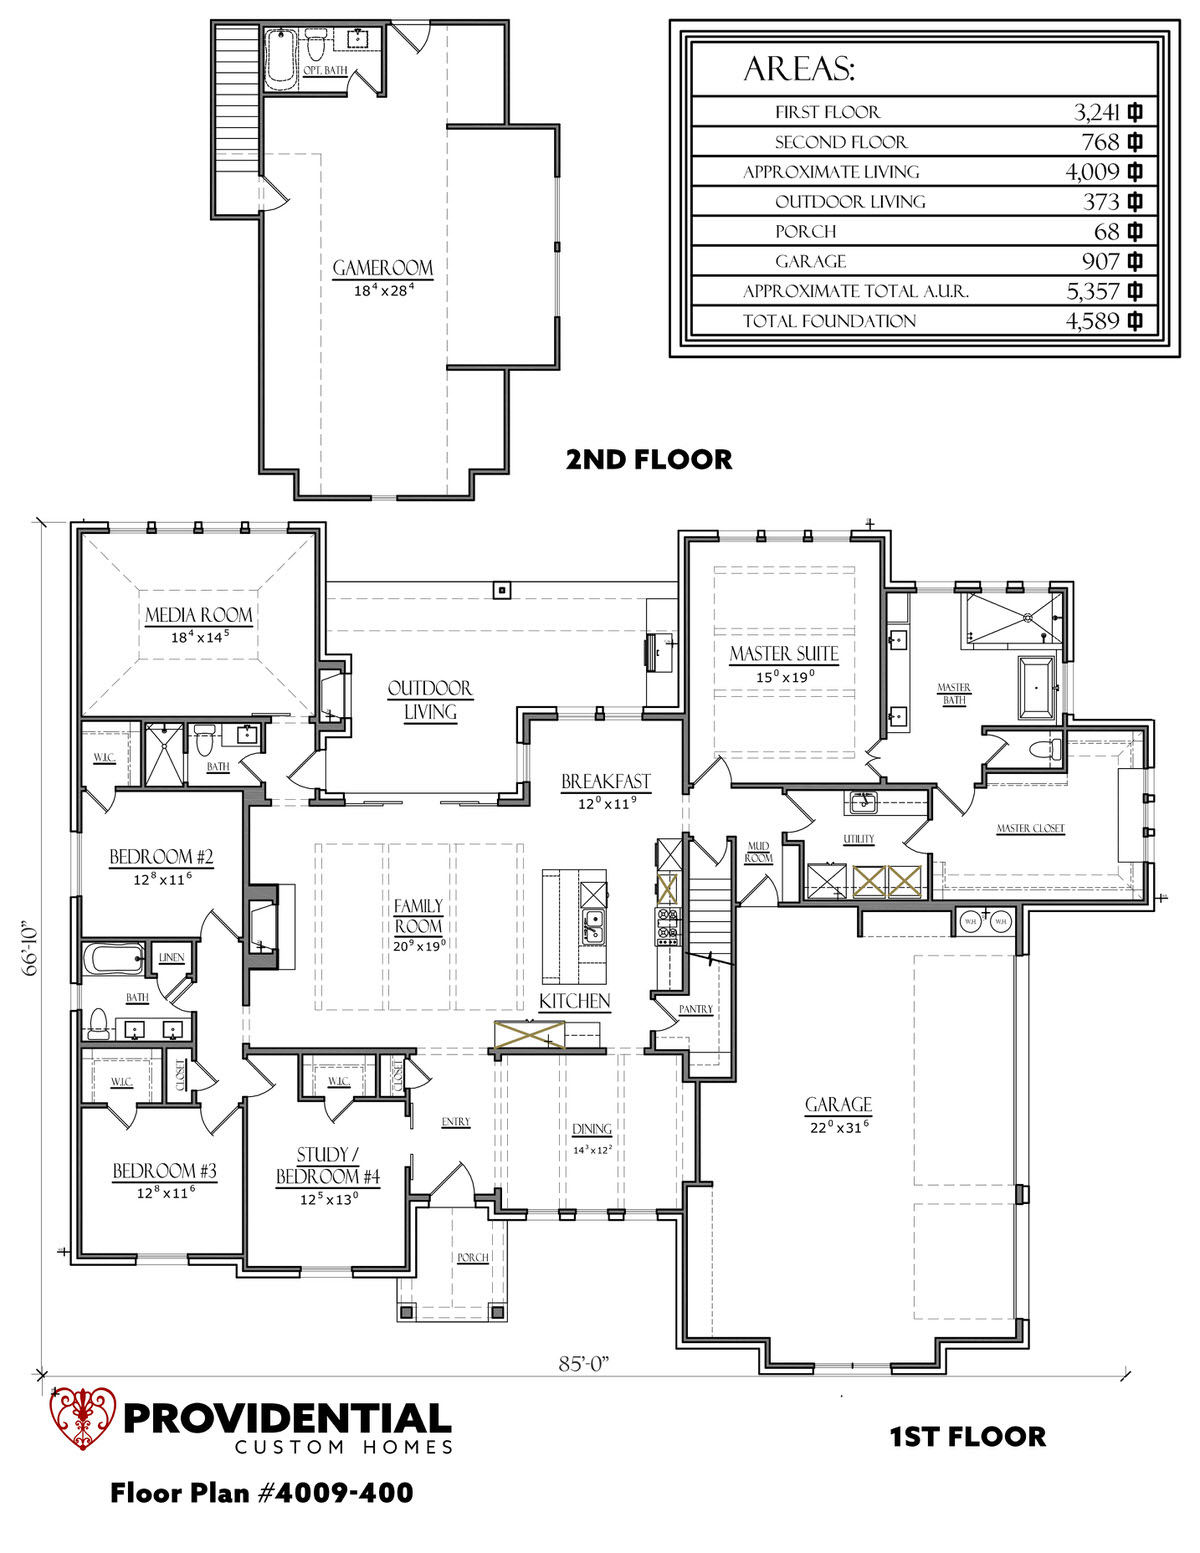 The FLOOR PLAN 4009-400.jpg